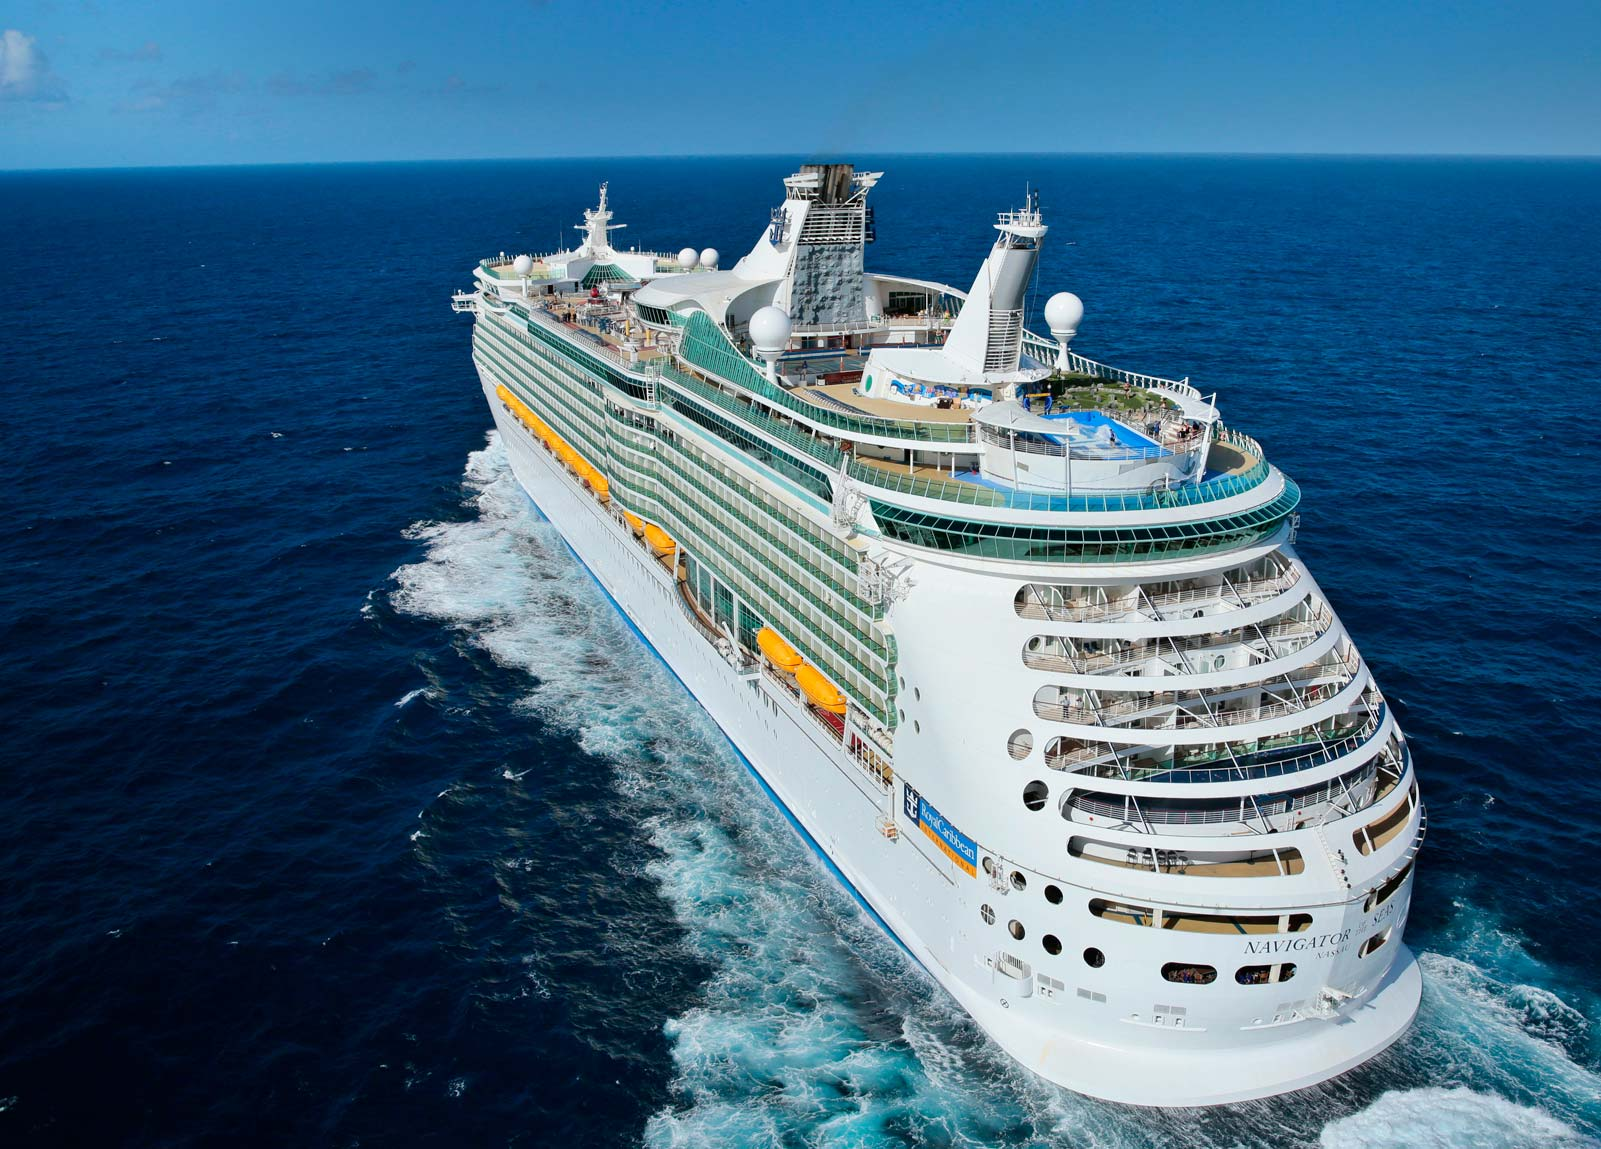 Royal Caribbean Cruises From Galveston, Galveston Last